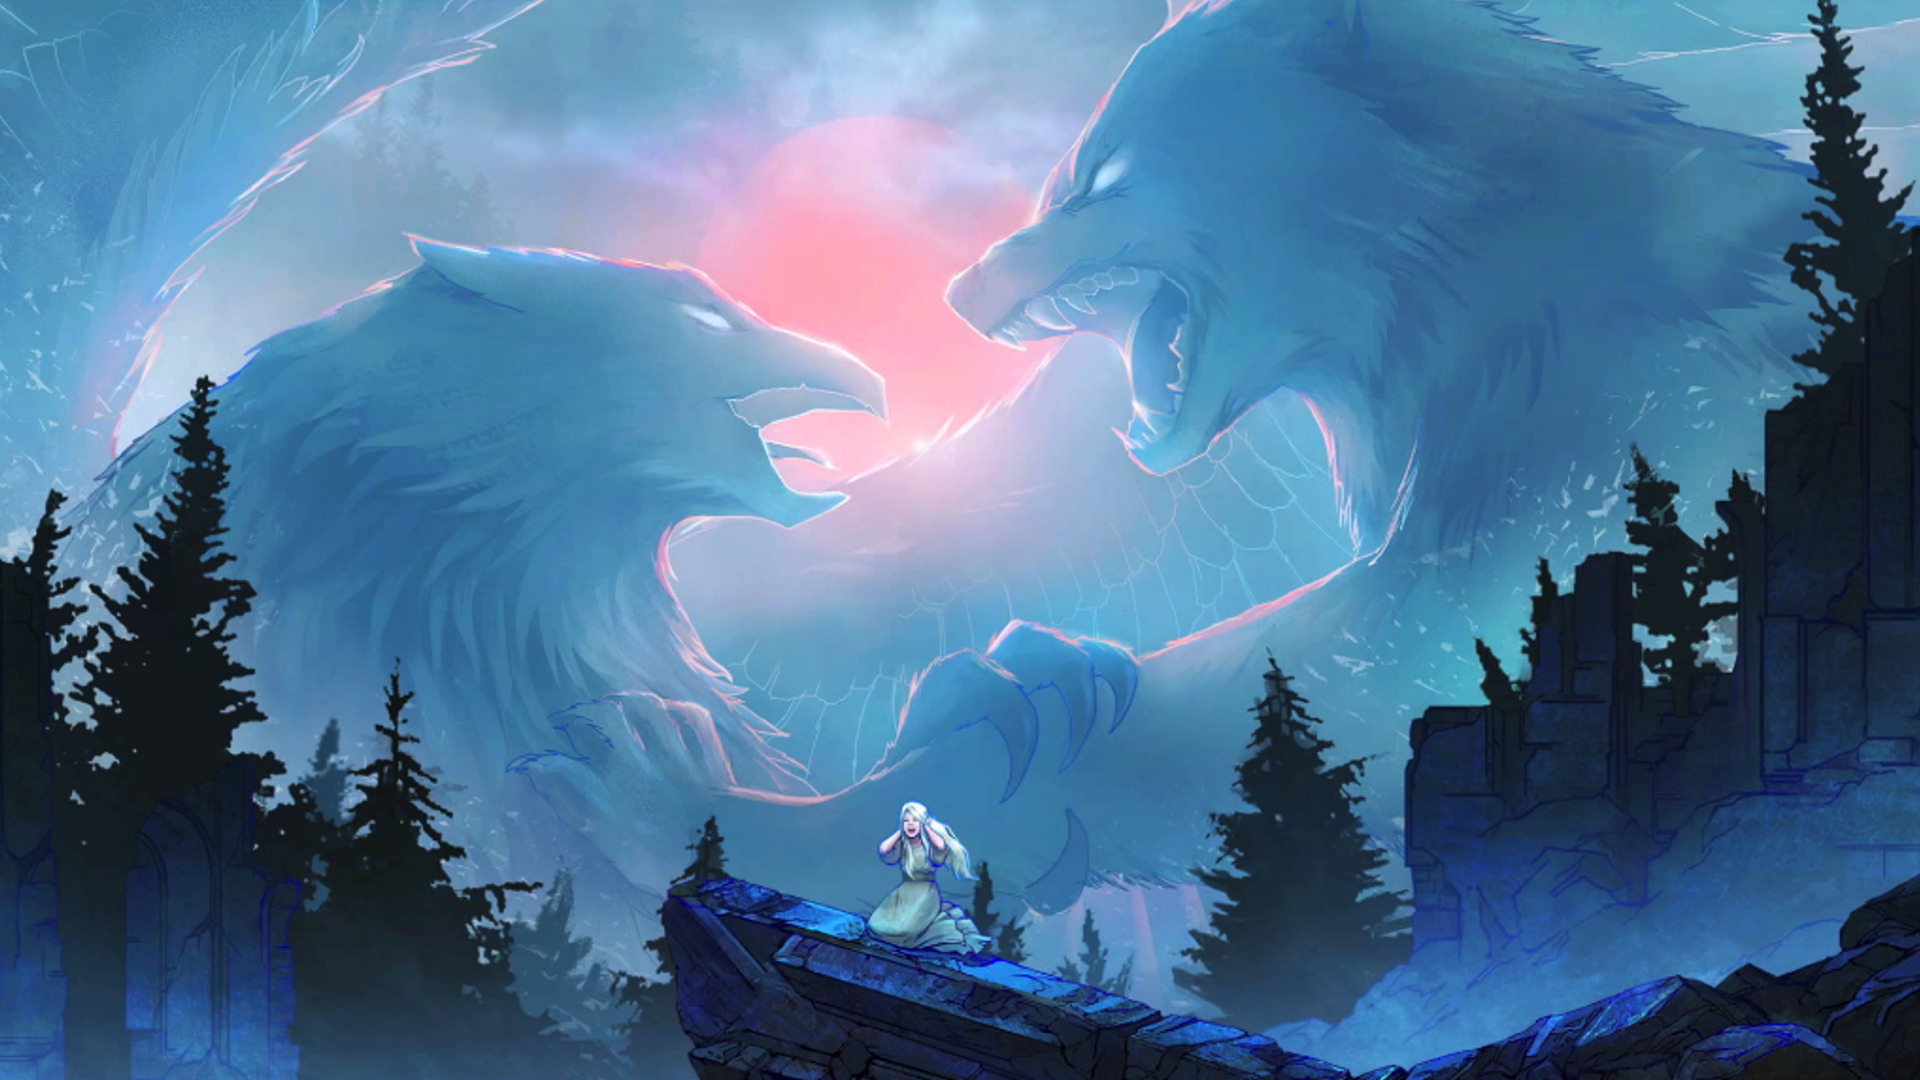 Werewolf 3d Wallpaper Snow Titans Eagle Wolf Wallpapers Hd Desktop And Mobile